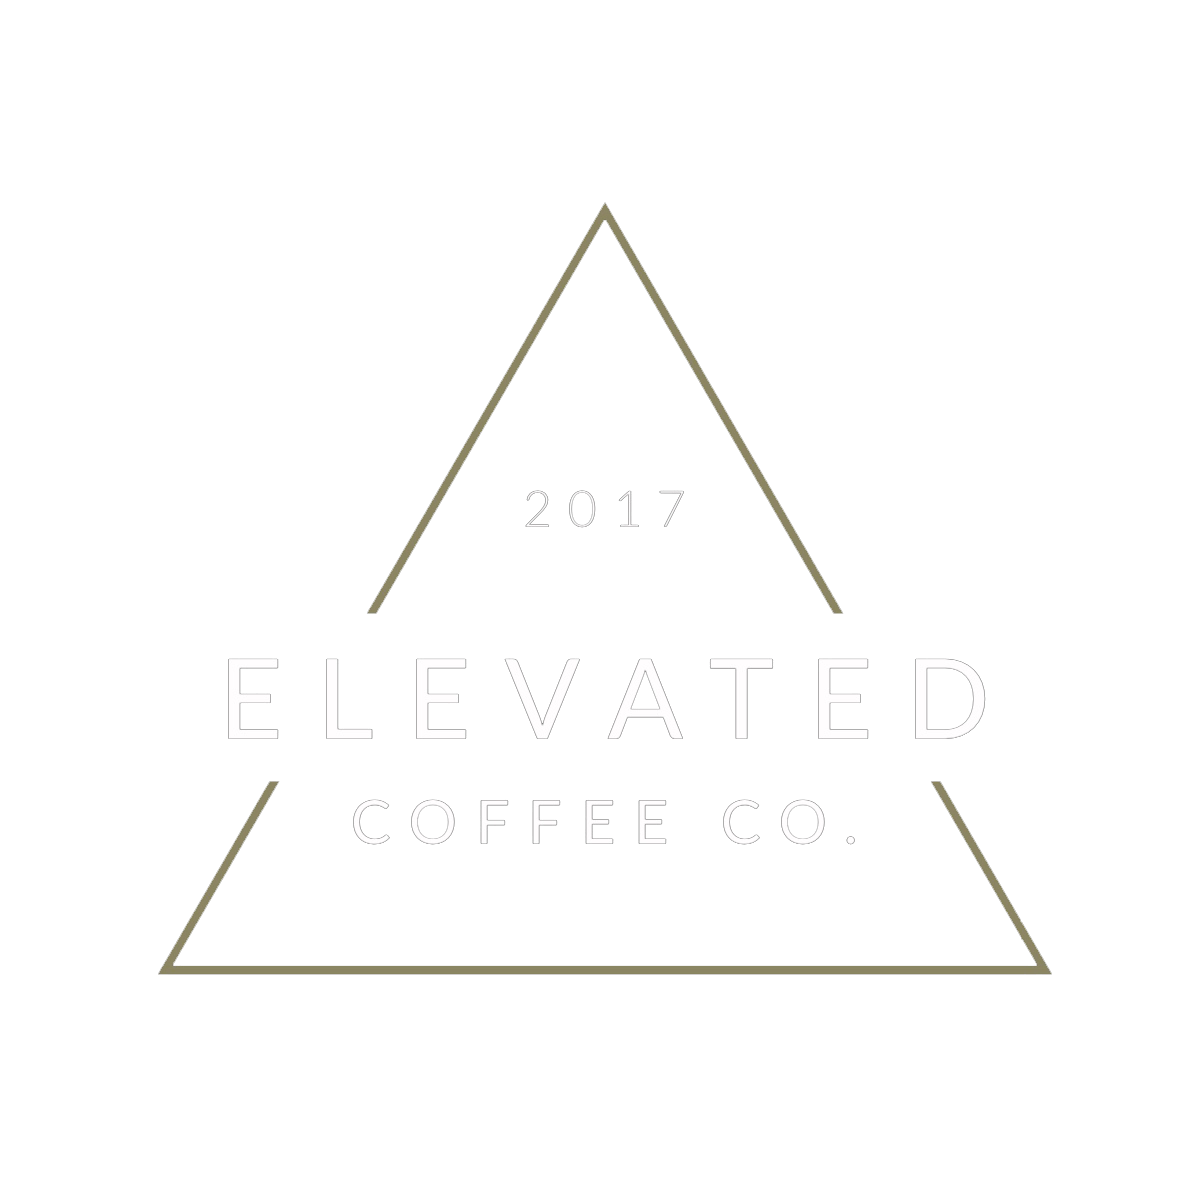 Elevated Coffee